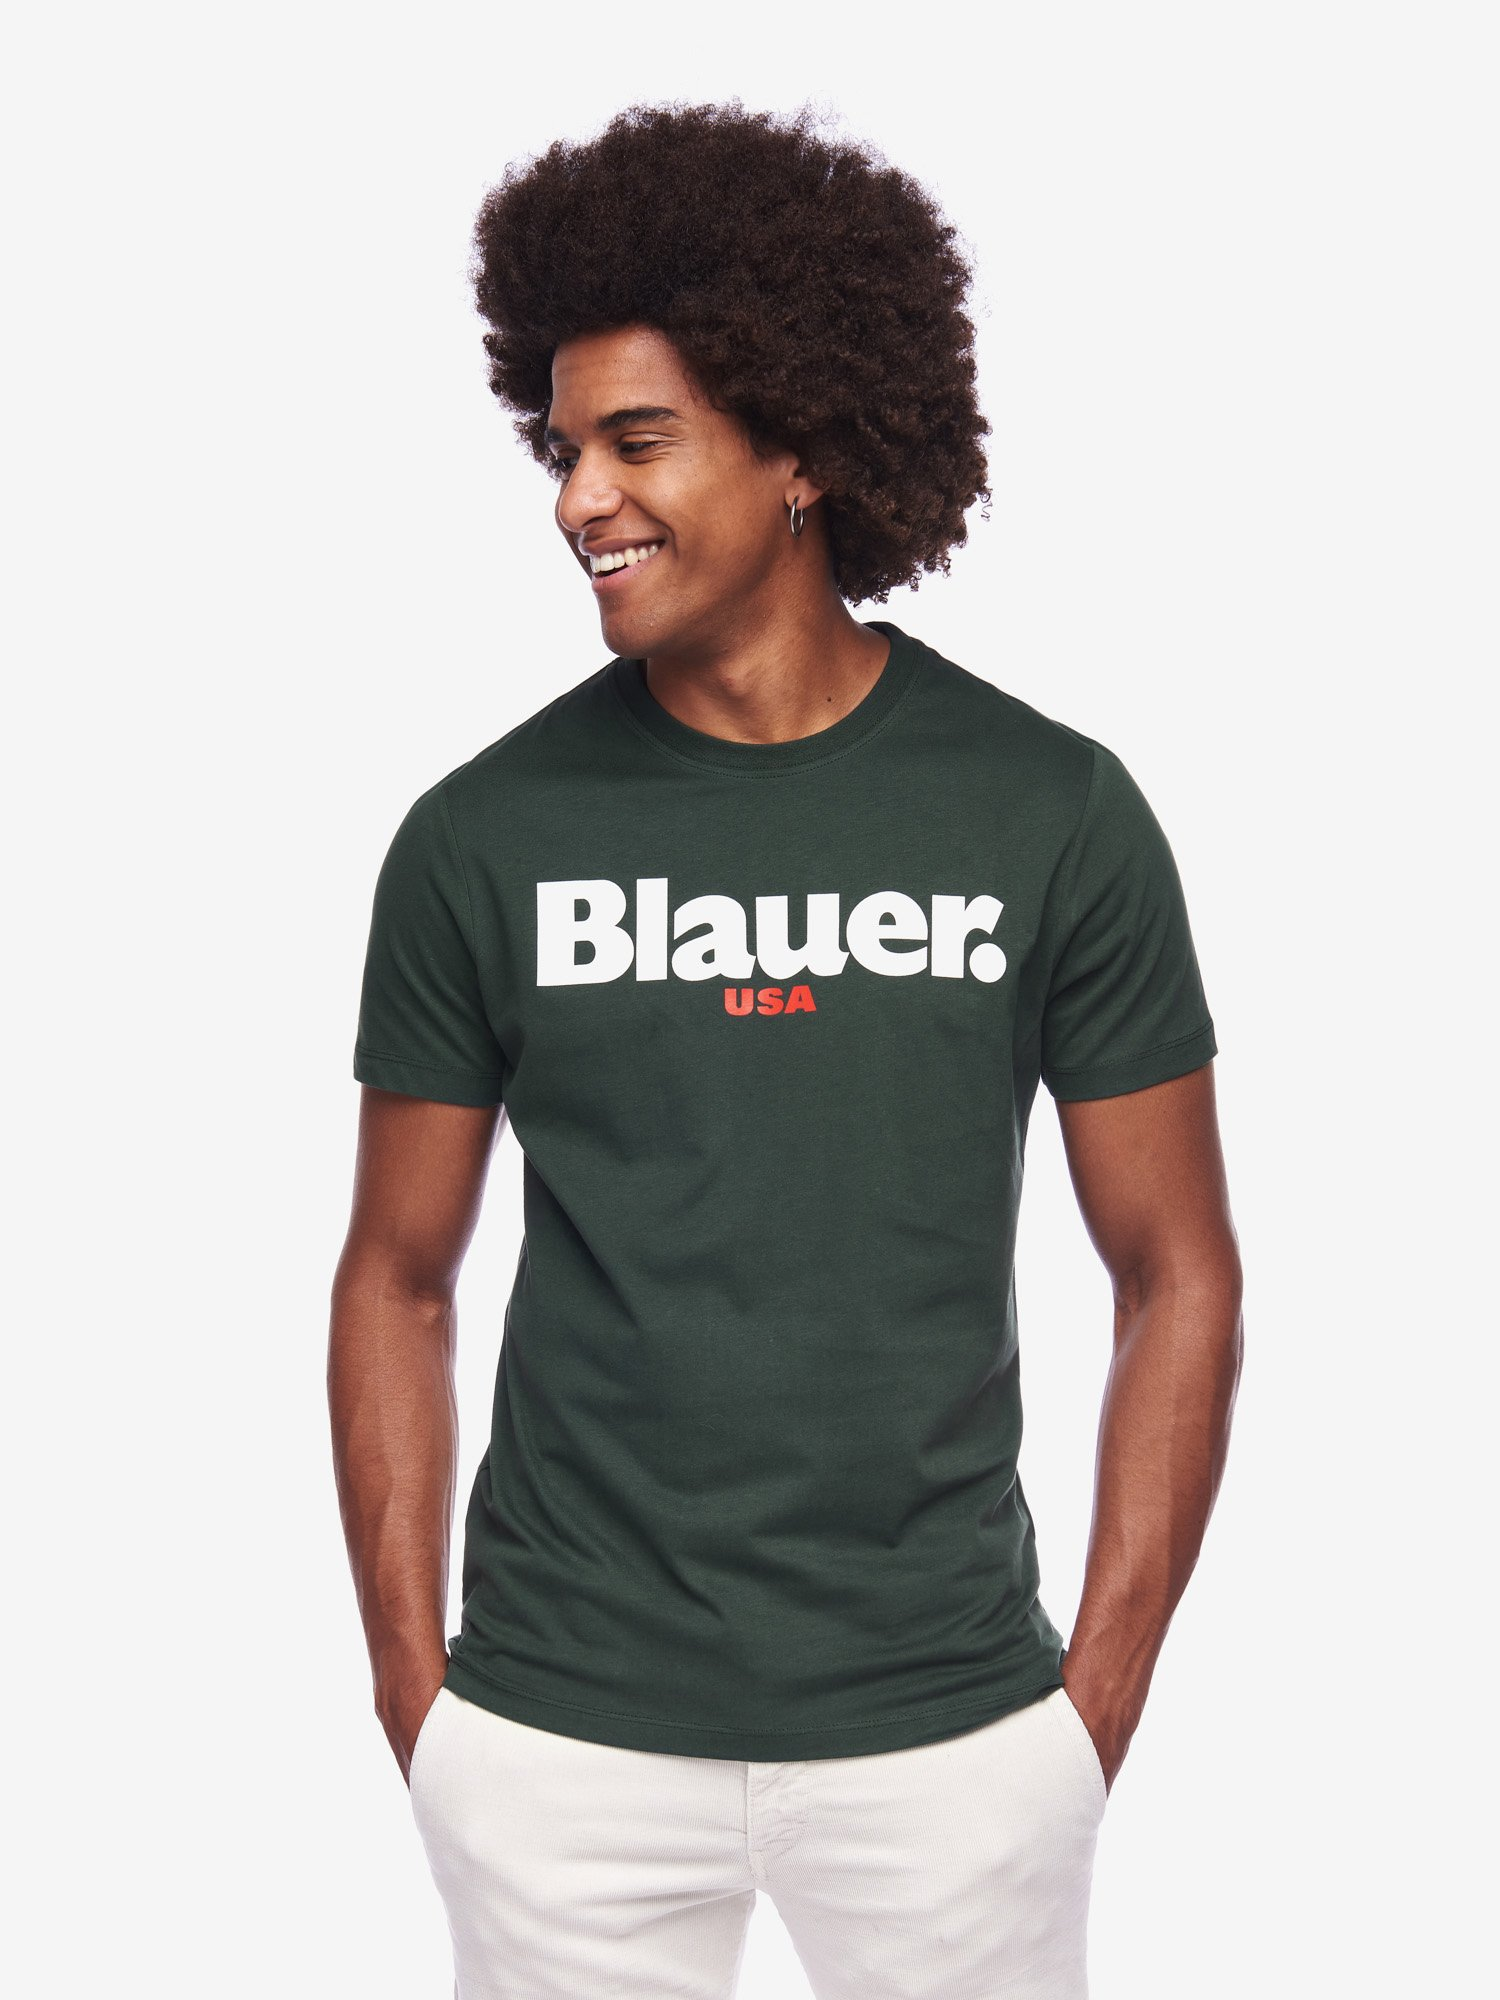 Blauer - LOGO T-SHIRT - Bottle Green - Blauer